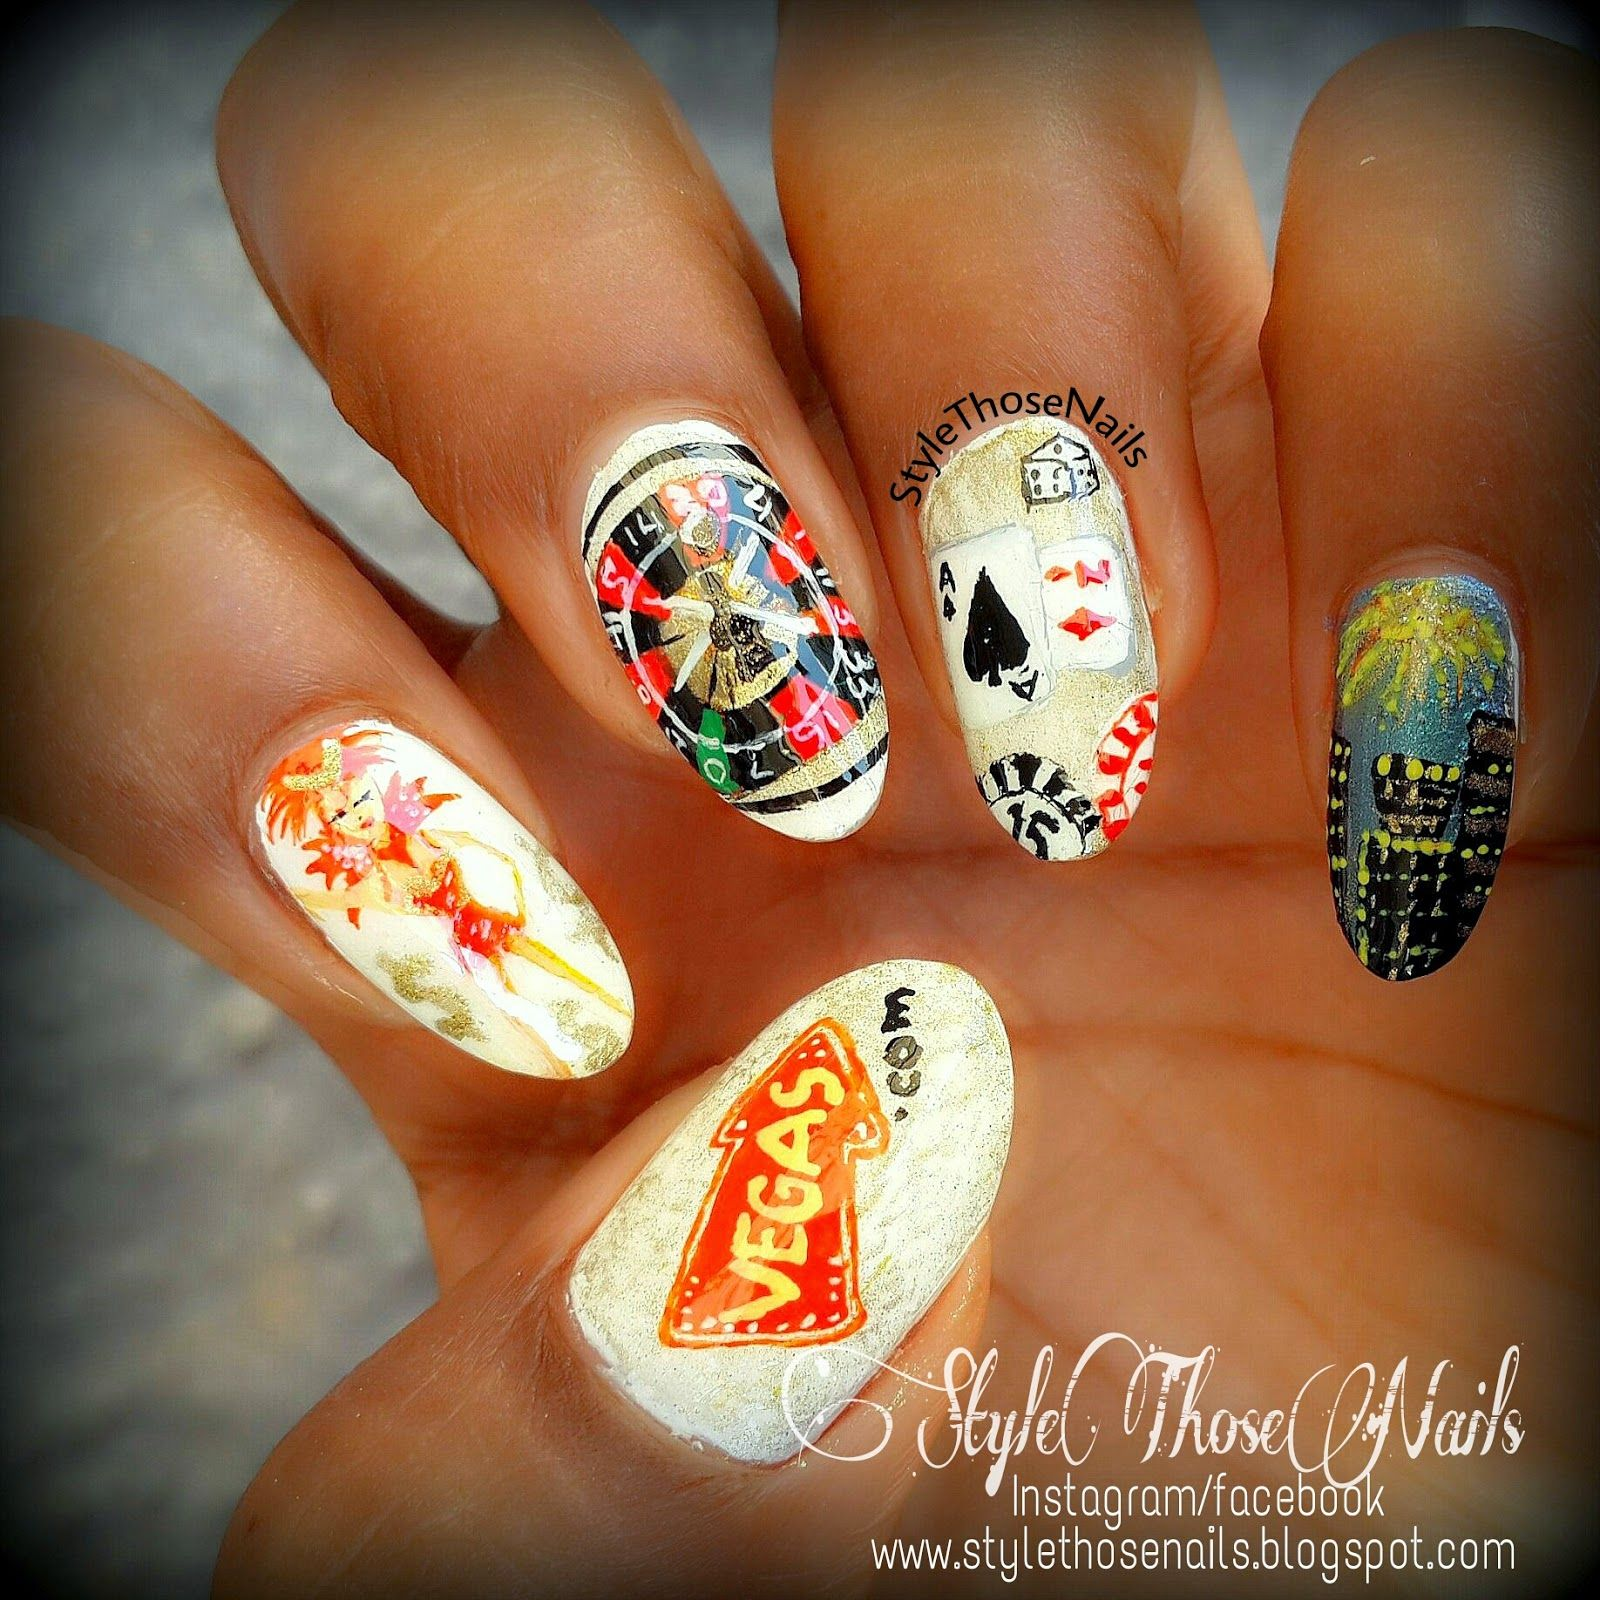 Style Those Nails: Night out in Vegas: A Las-Vegas Themed Nail Art ...